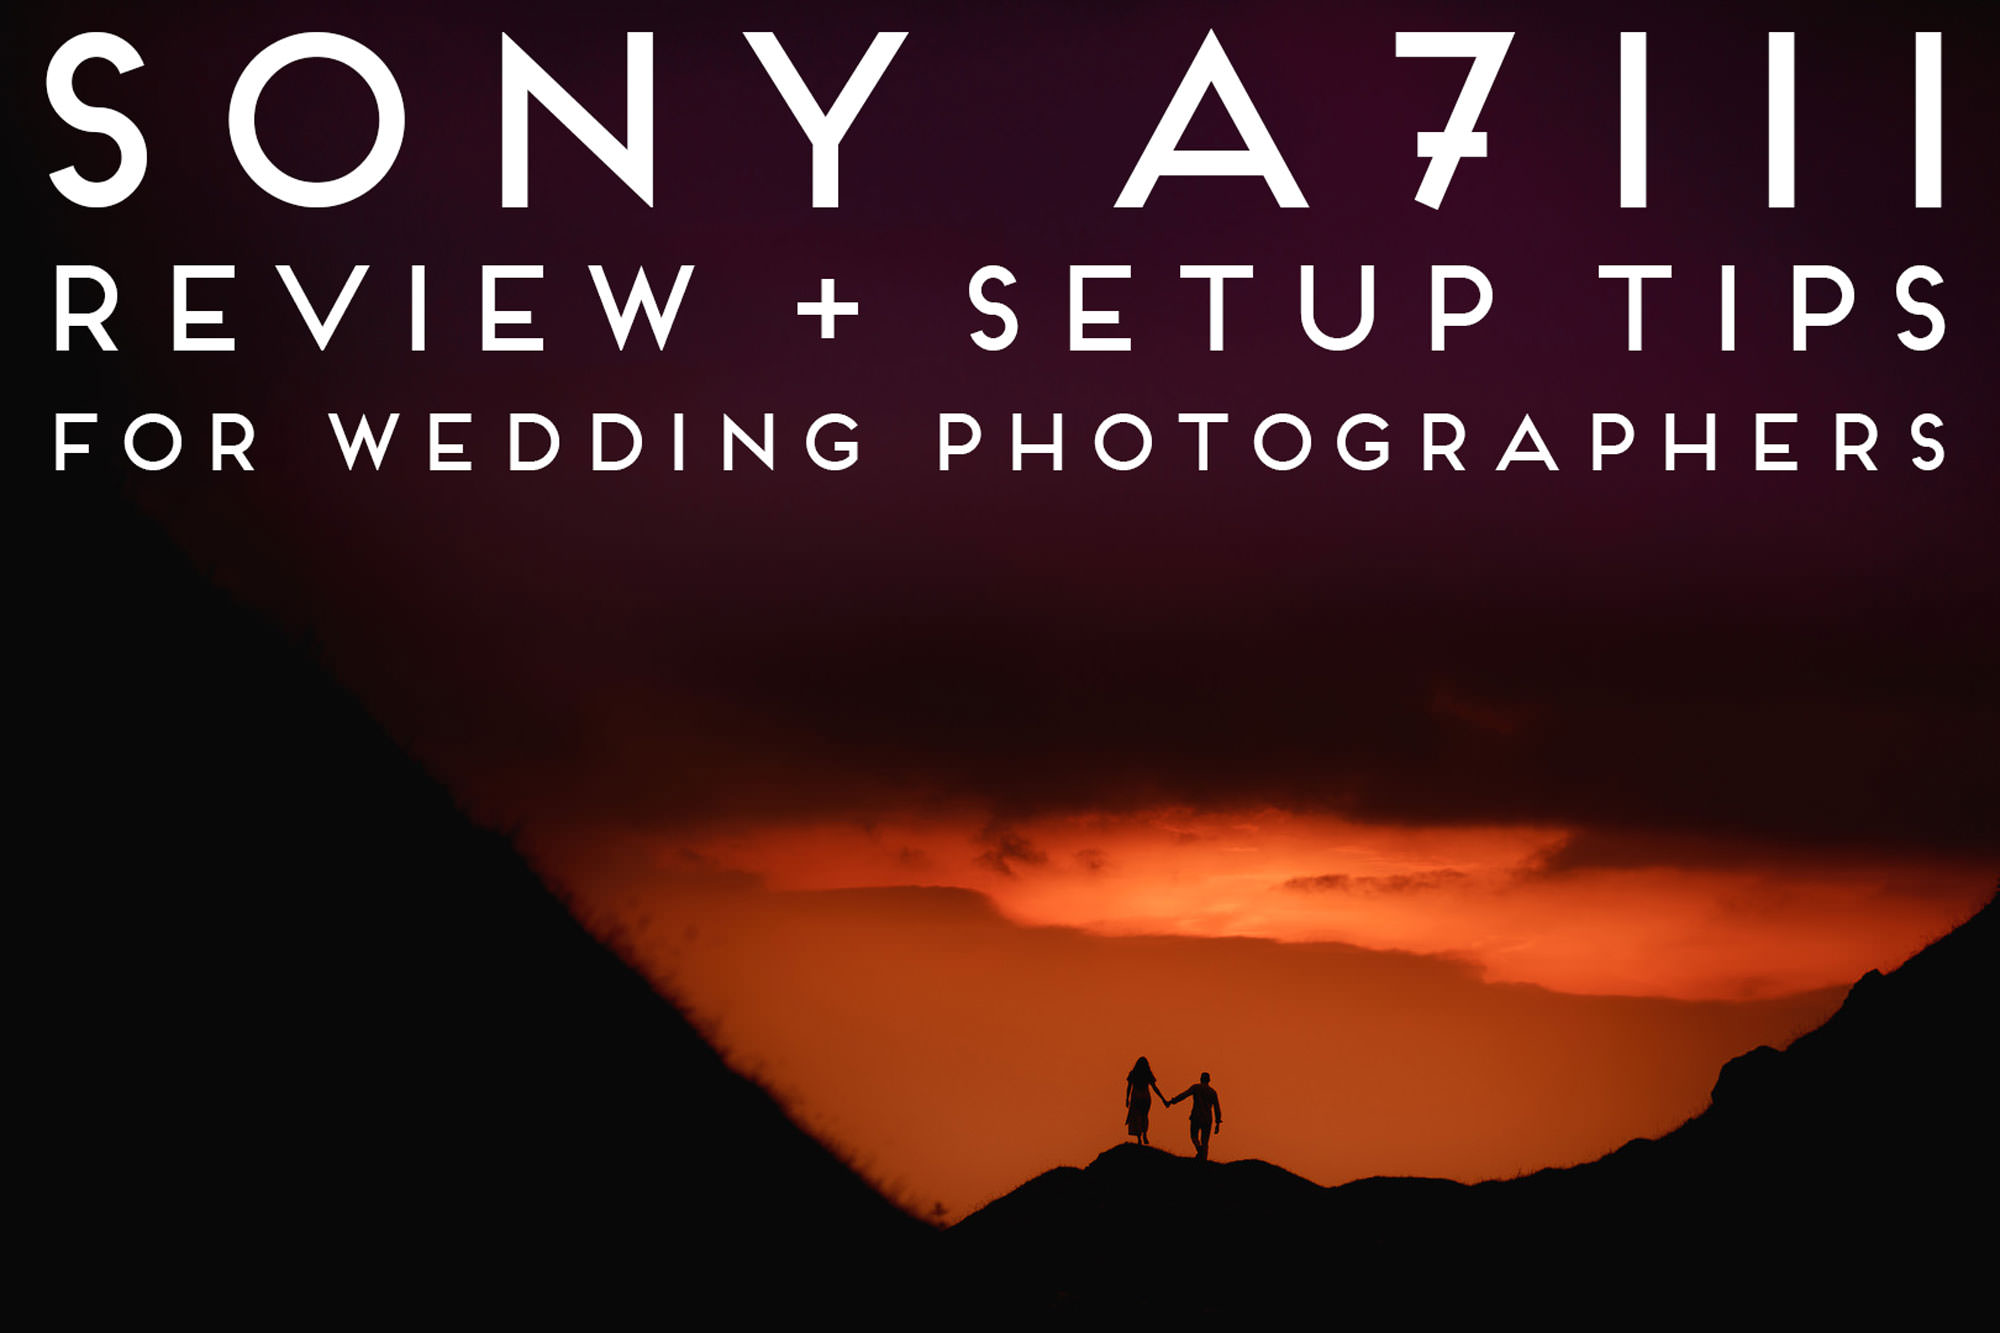 Sony A7iii Review and Setup Tips for Wedding Photographers